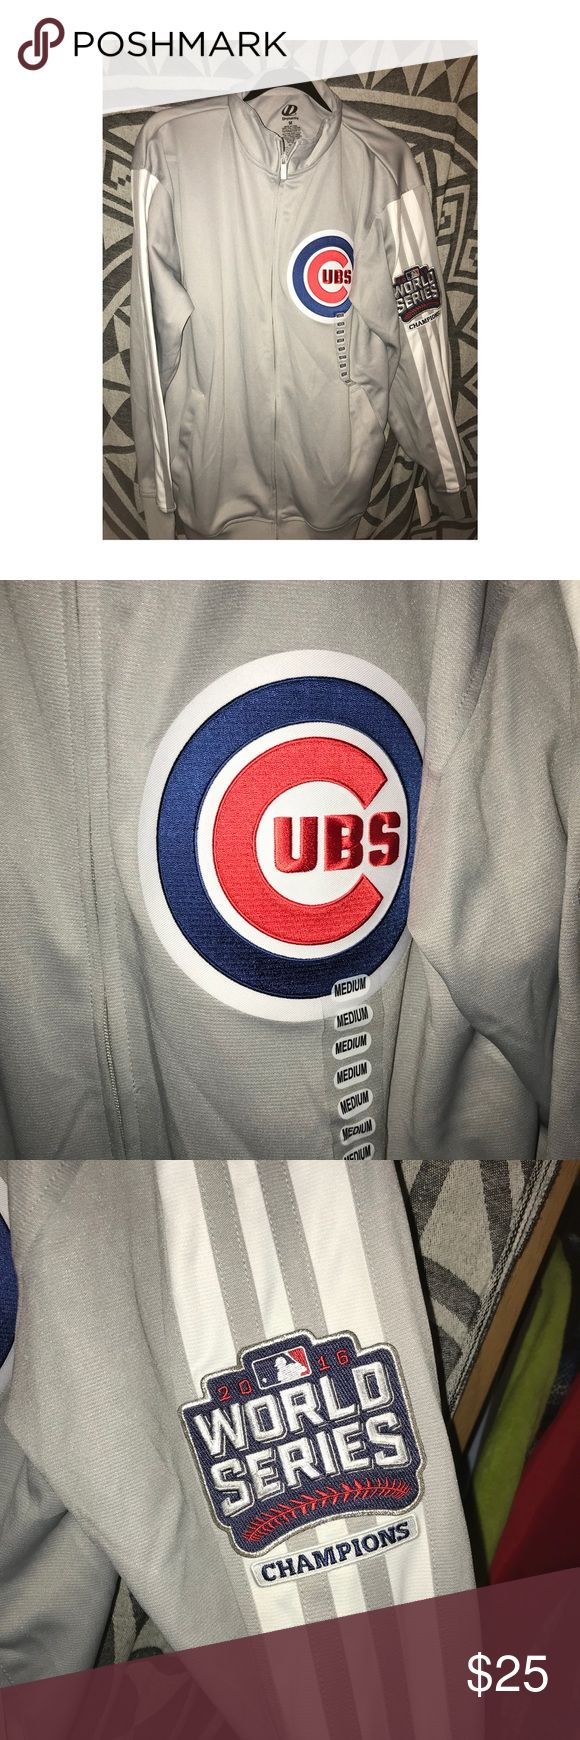 Cubs World Series championship 2016 jacket Brand new grey cubs championship zip up jacket. It had two patches: one is the logo and the other is the World Series logo. It's super cozy and sporty, and any boy or girl would love it dynasty Jackets & Coats